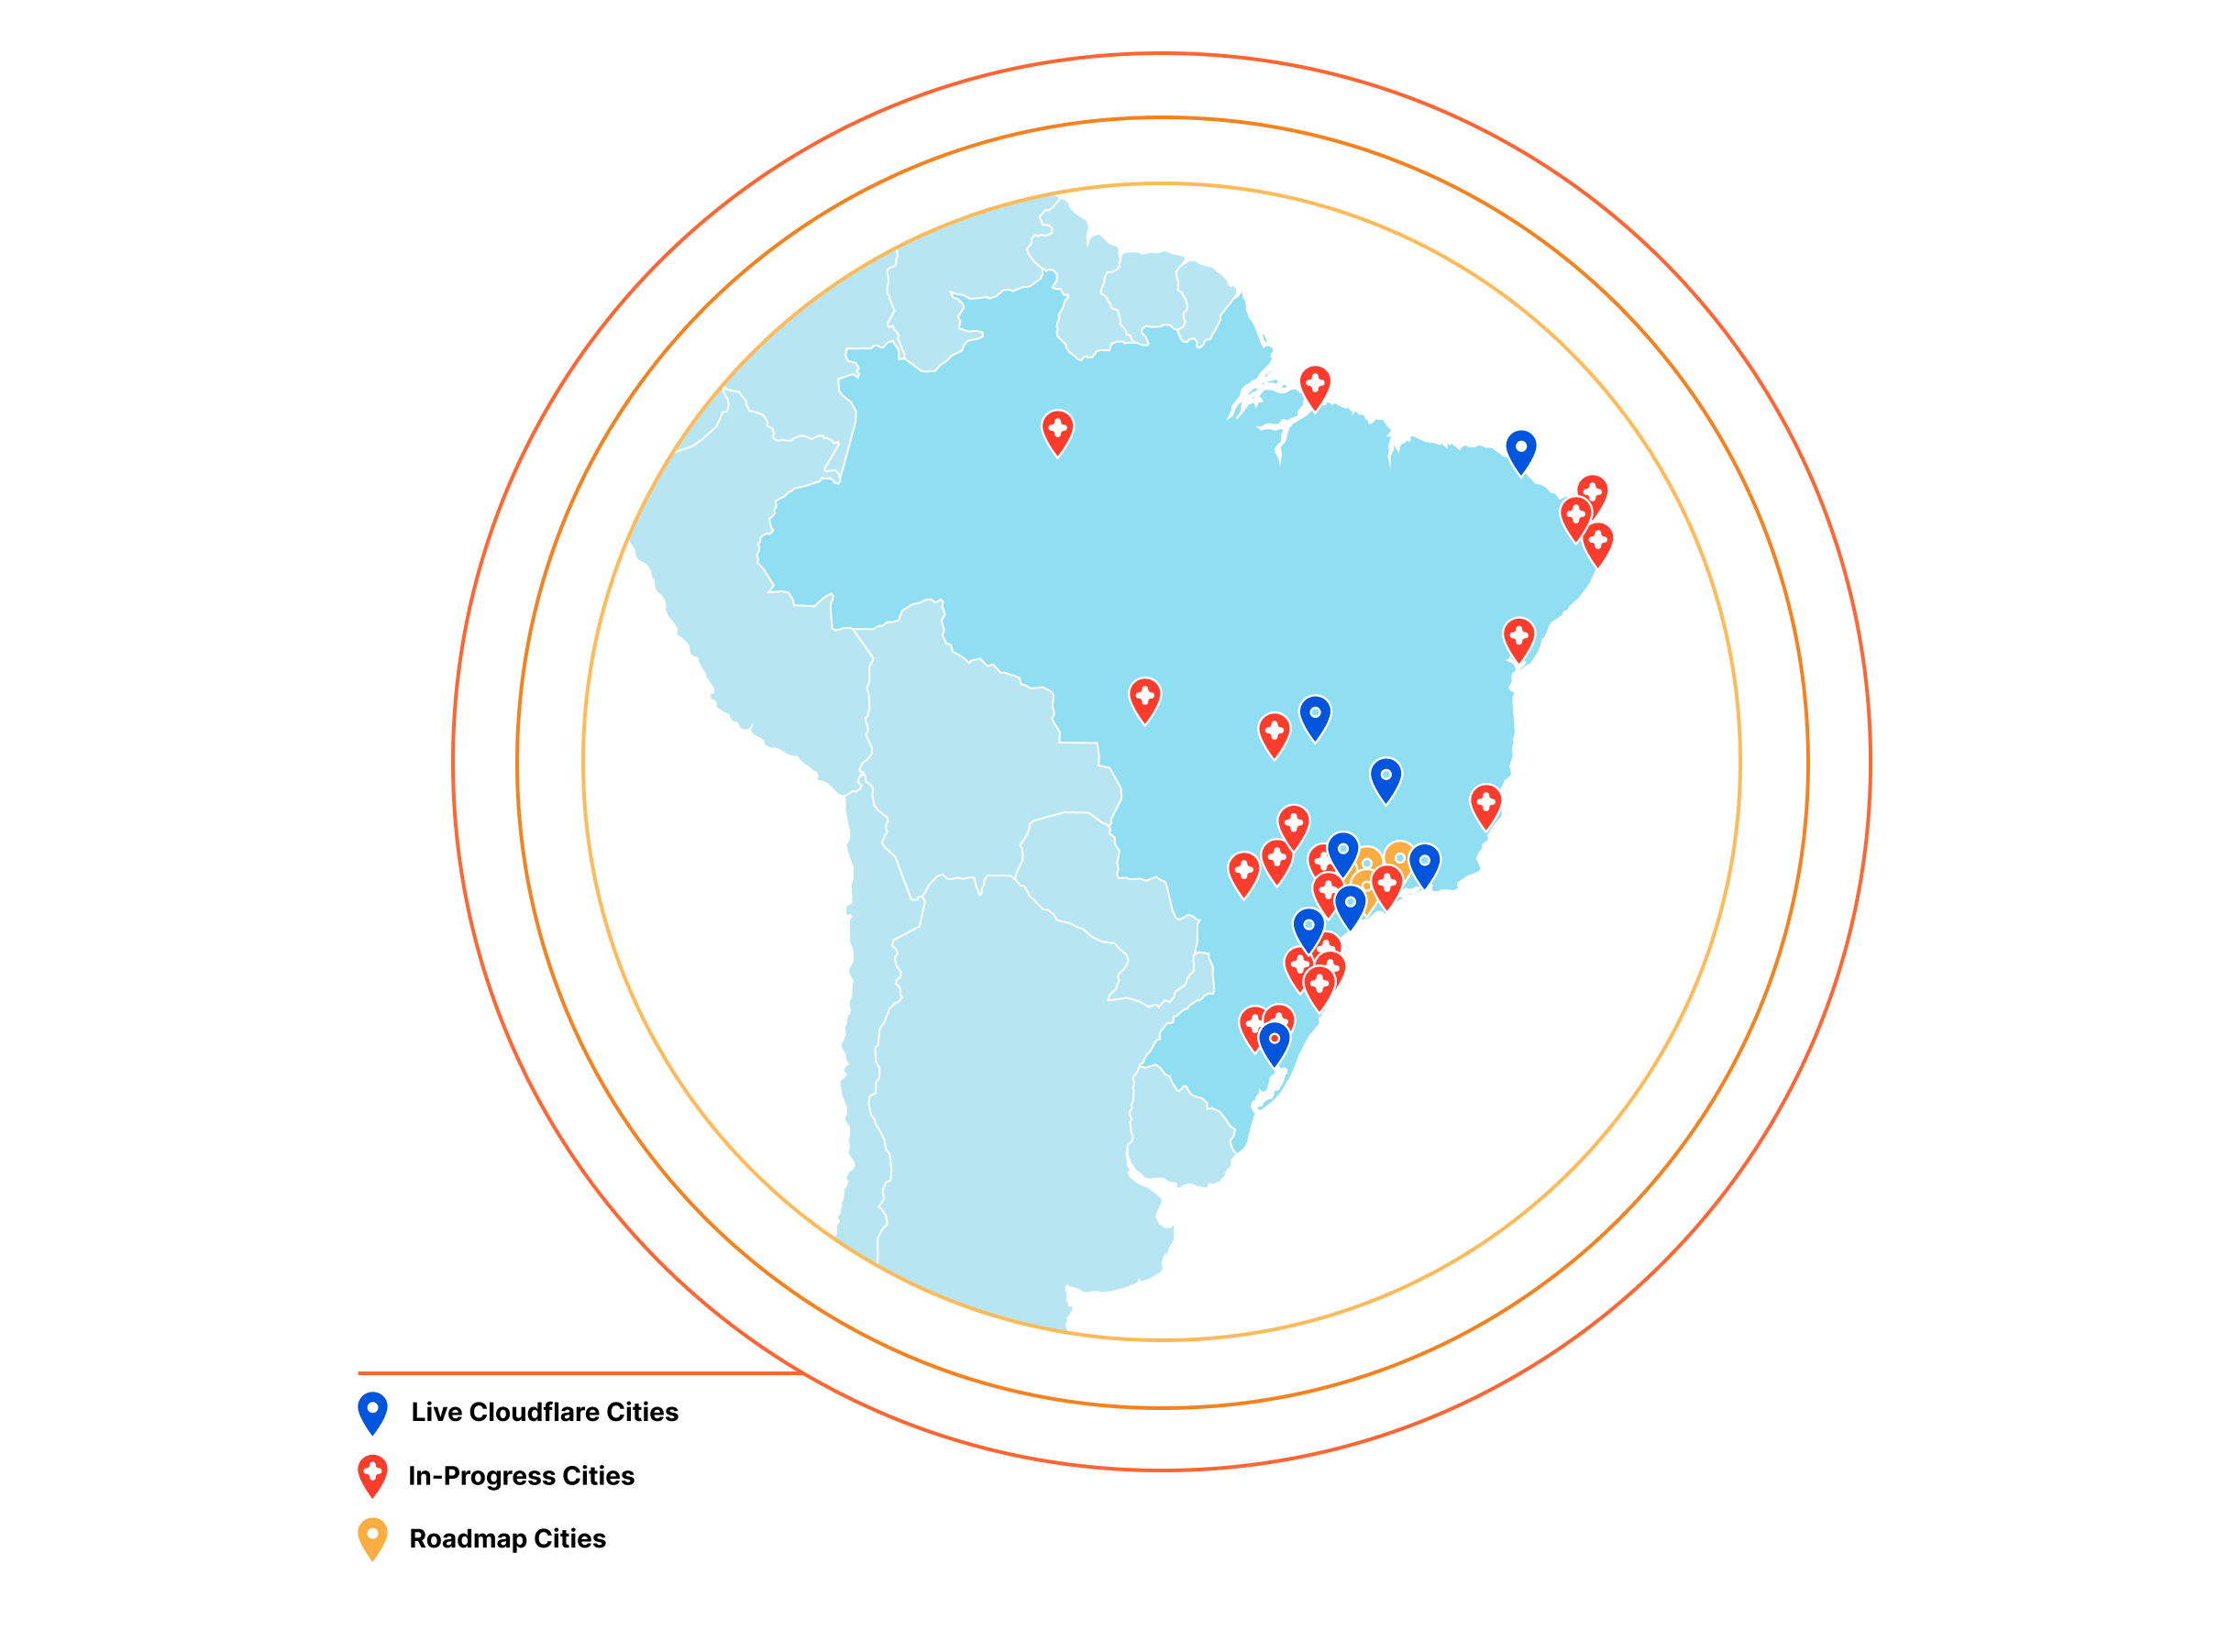 Expanding Cloudflare to 25+ Cities in Brazil